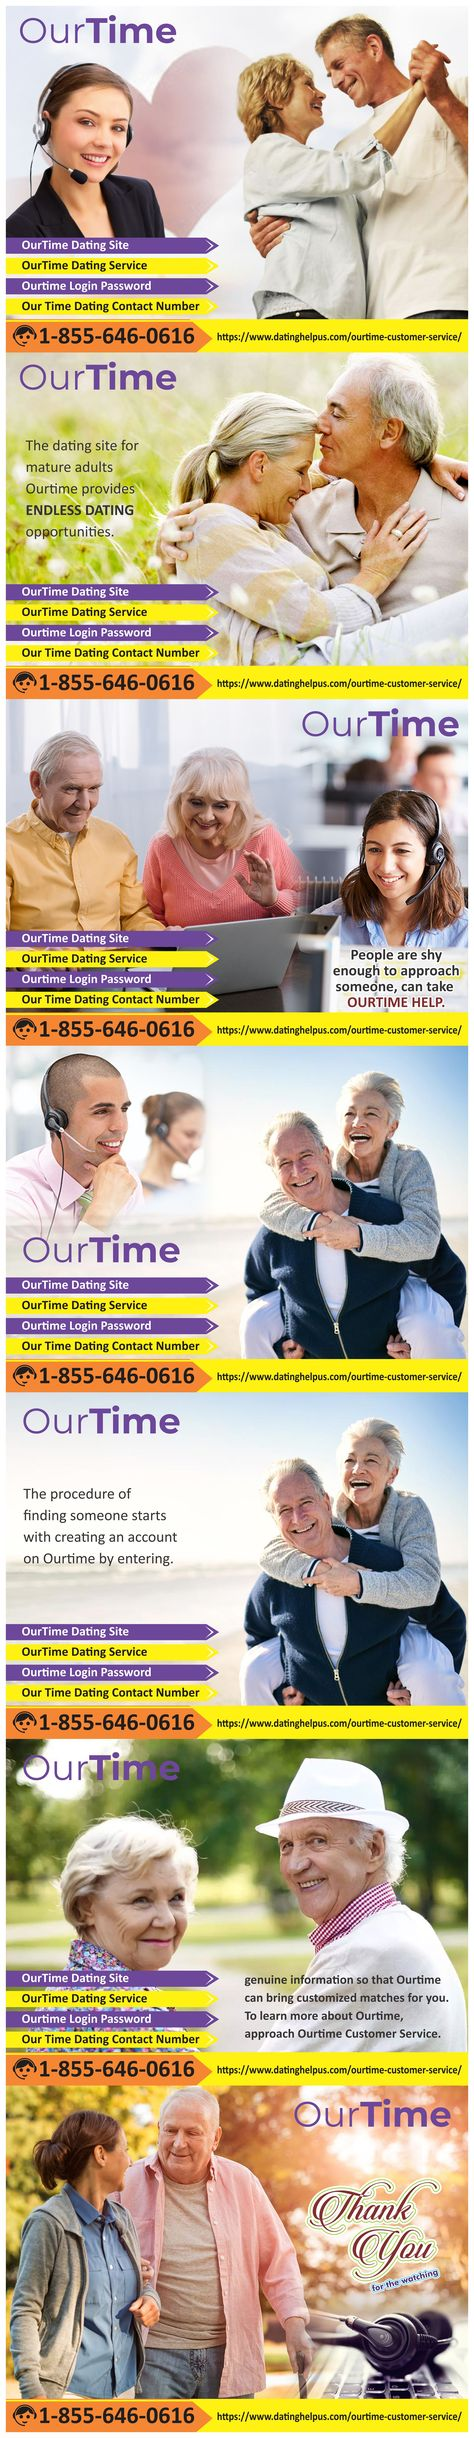 contact intelligence seeking ourtime com